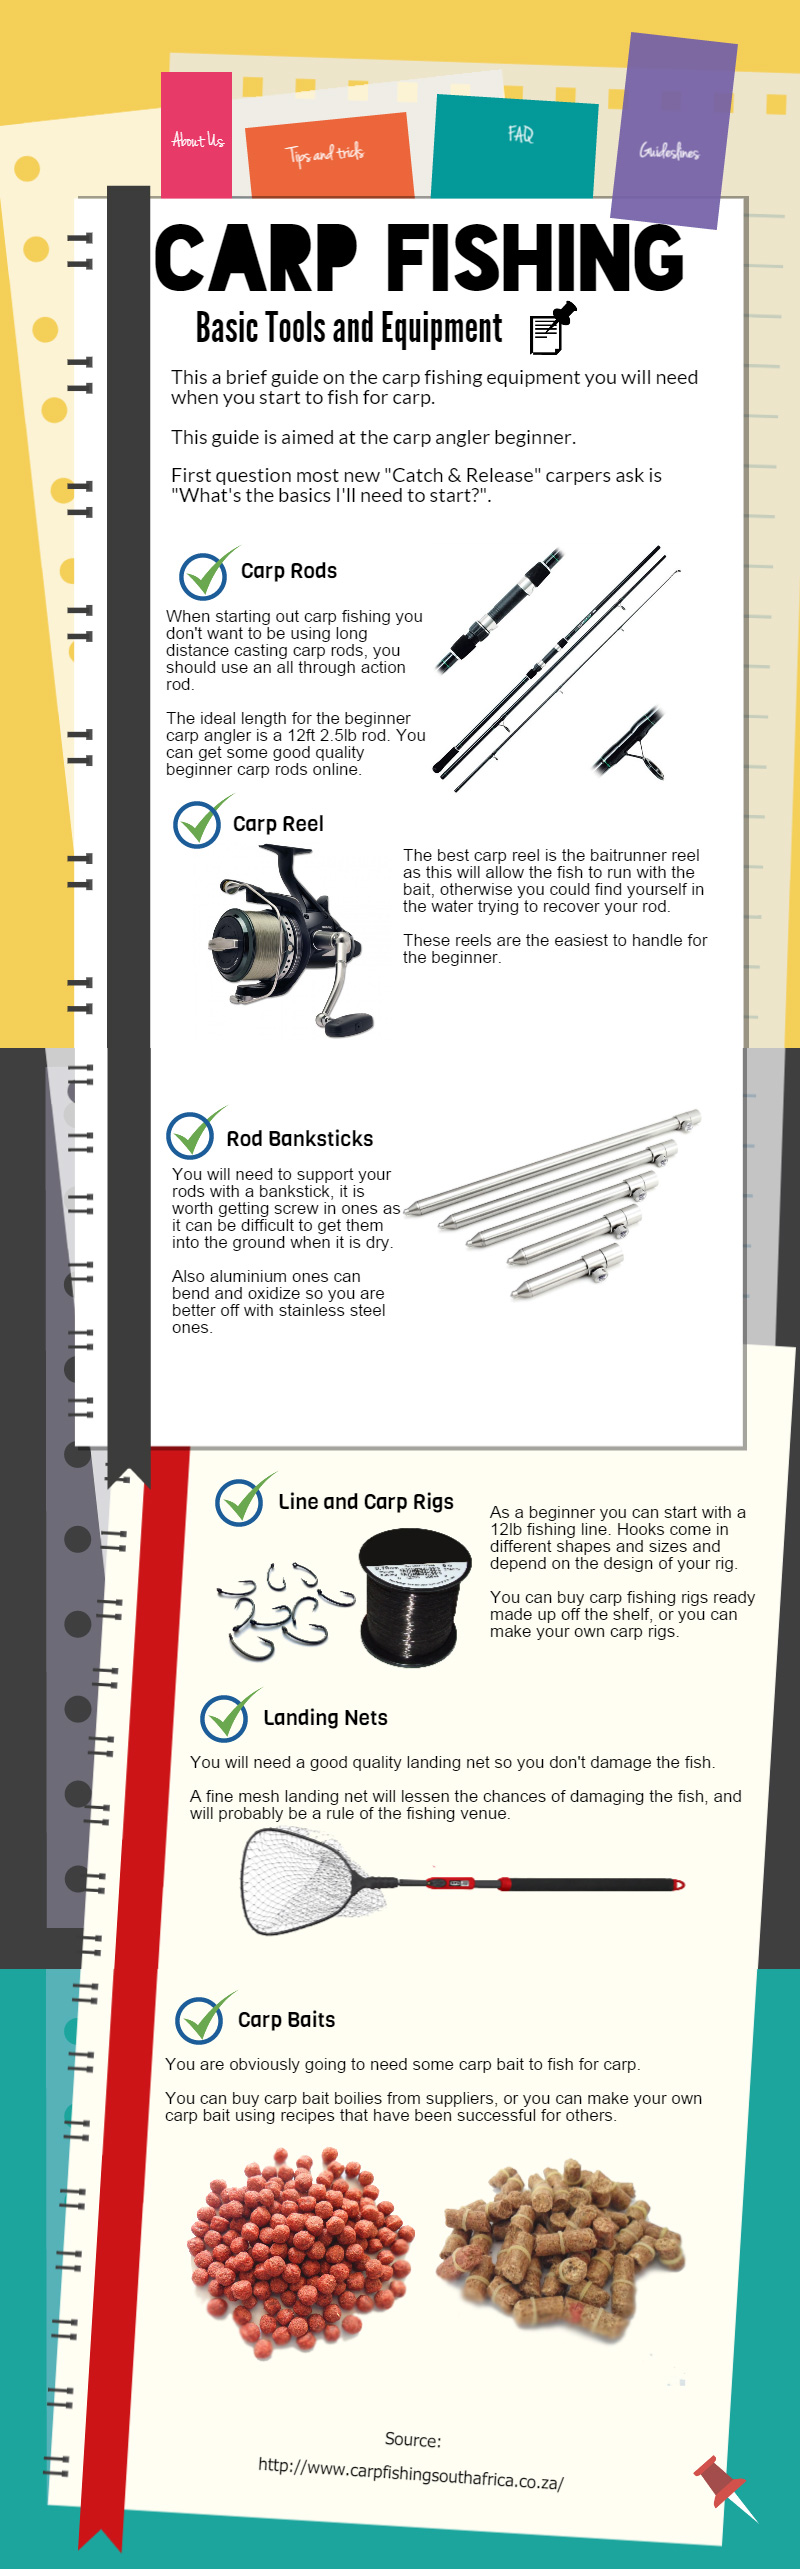 carp-fishing-tools-infographic 2